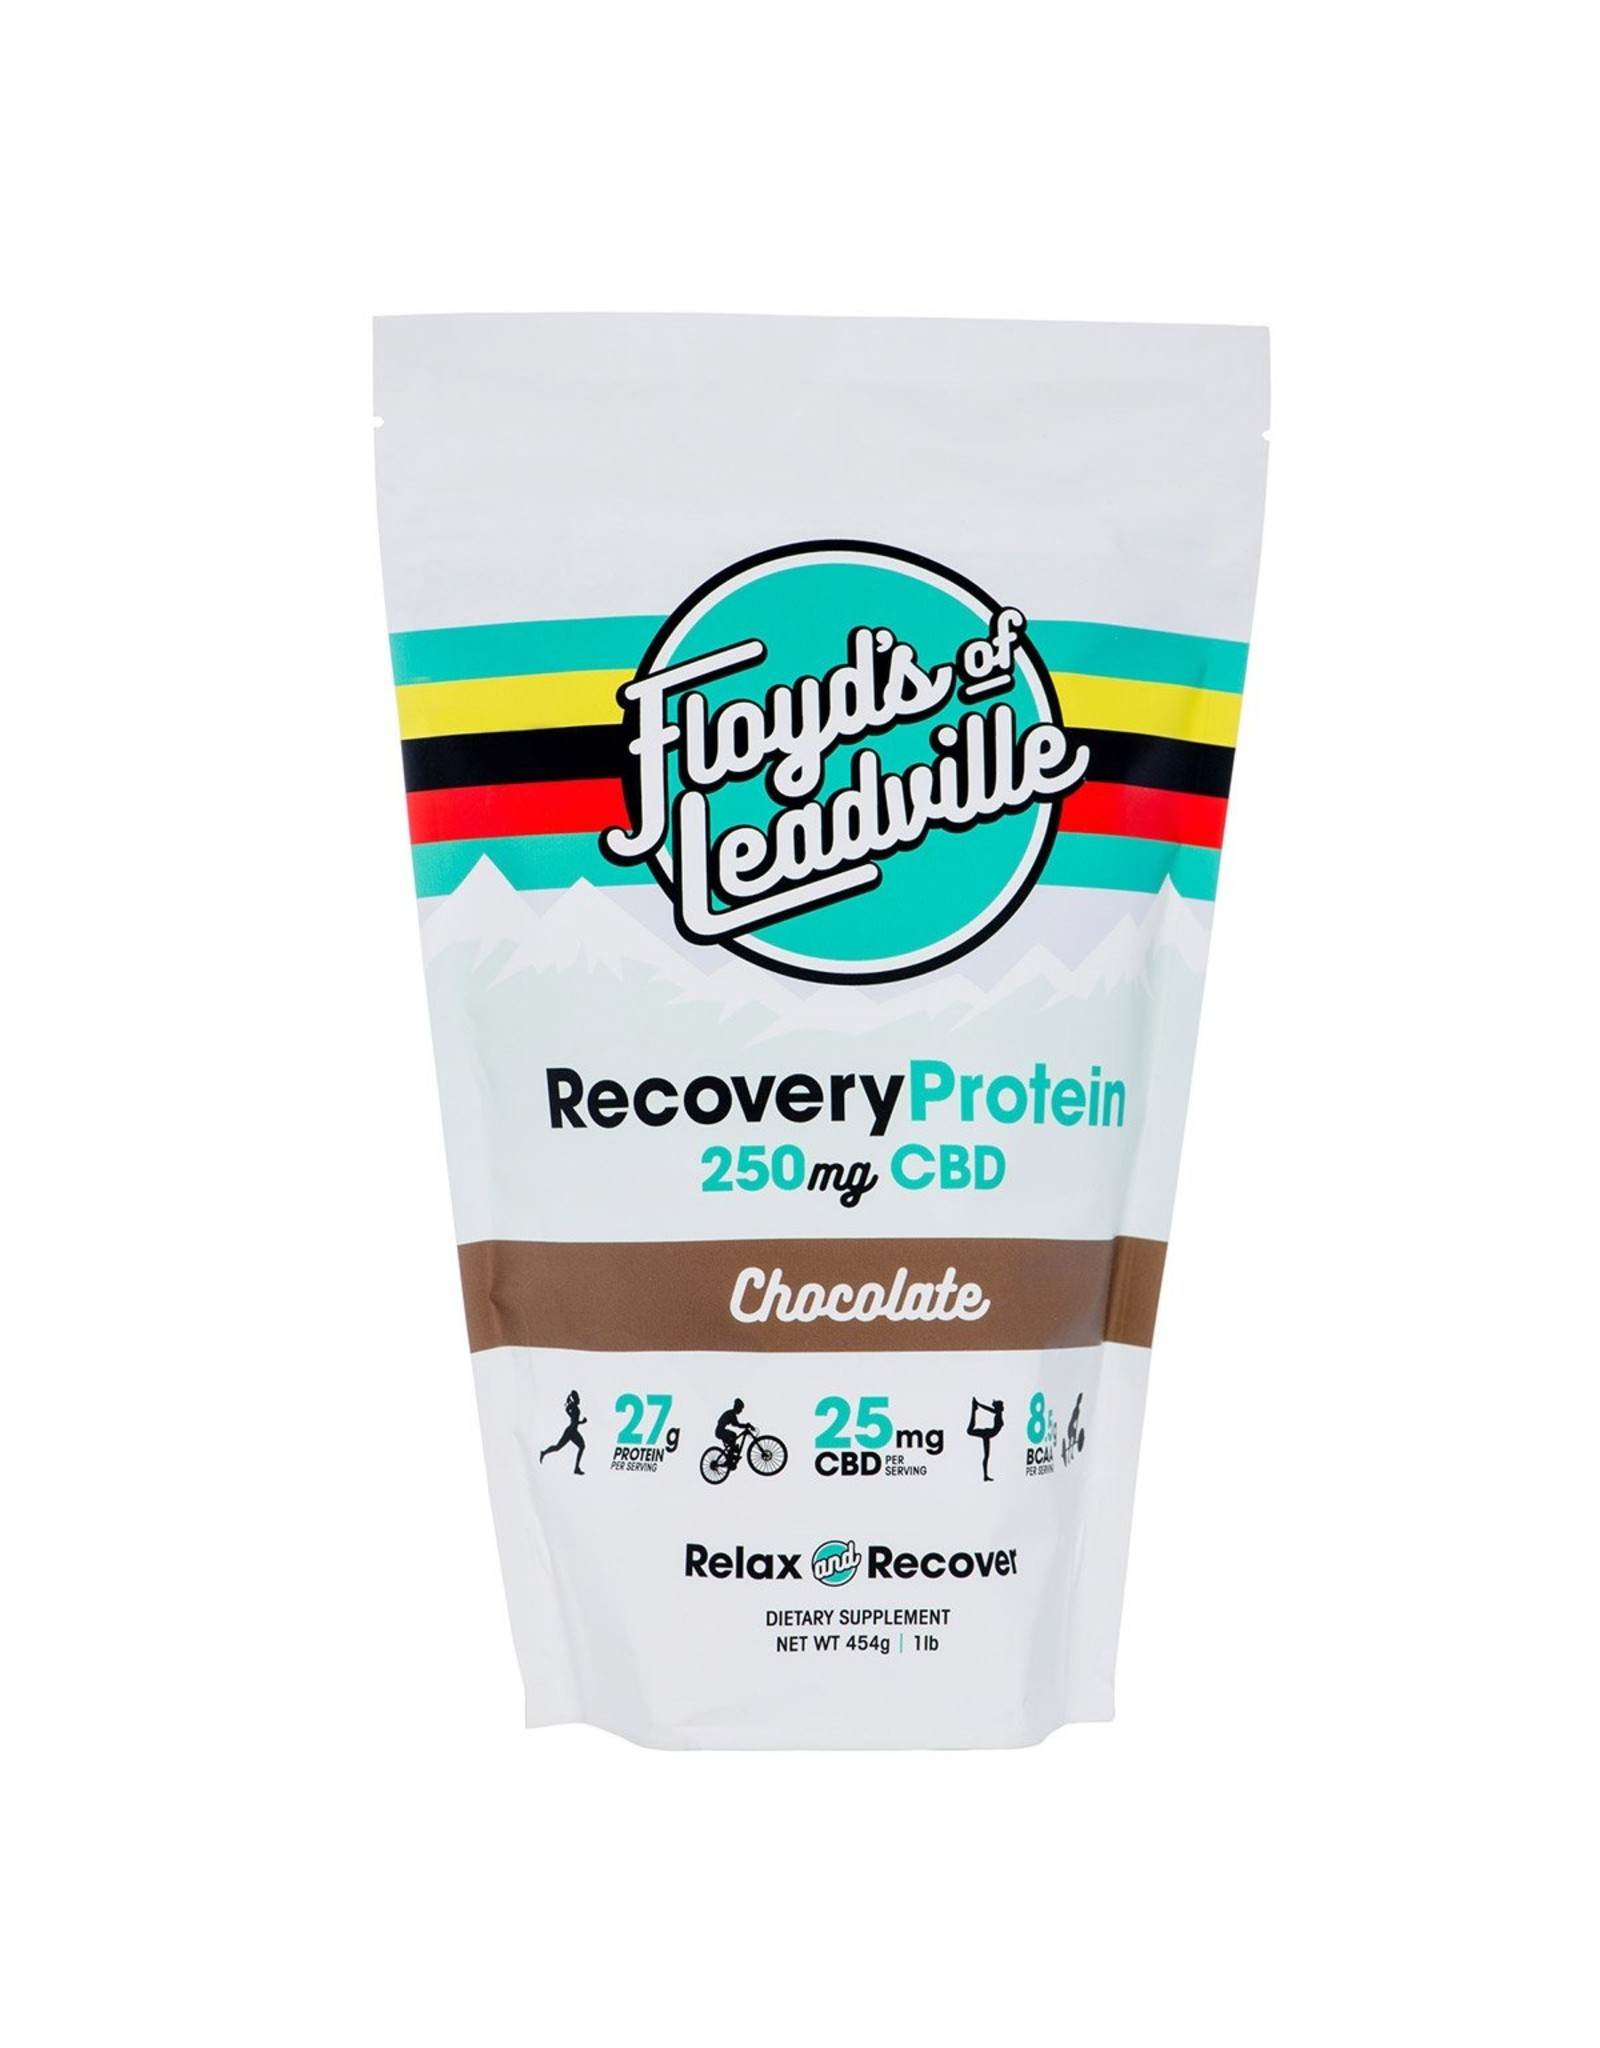 Floyd's of Leadville Recovery Protein